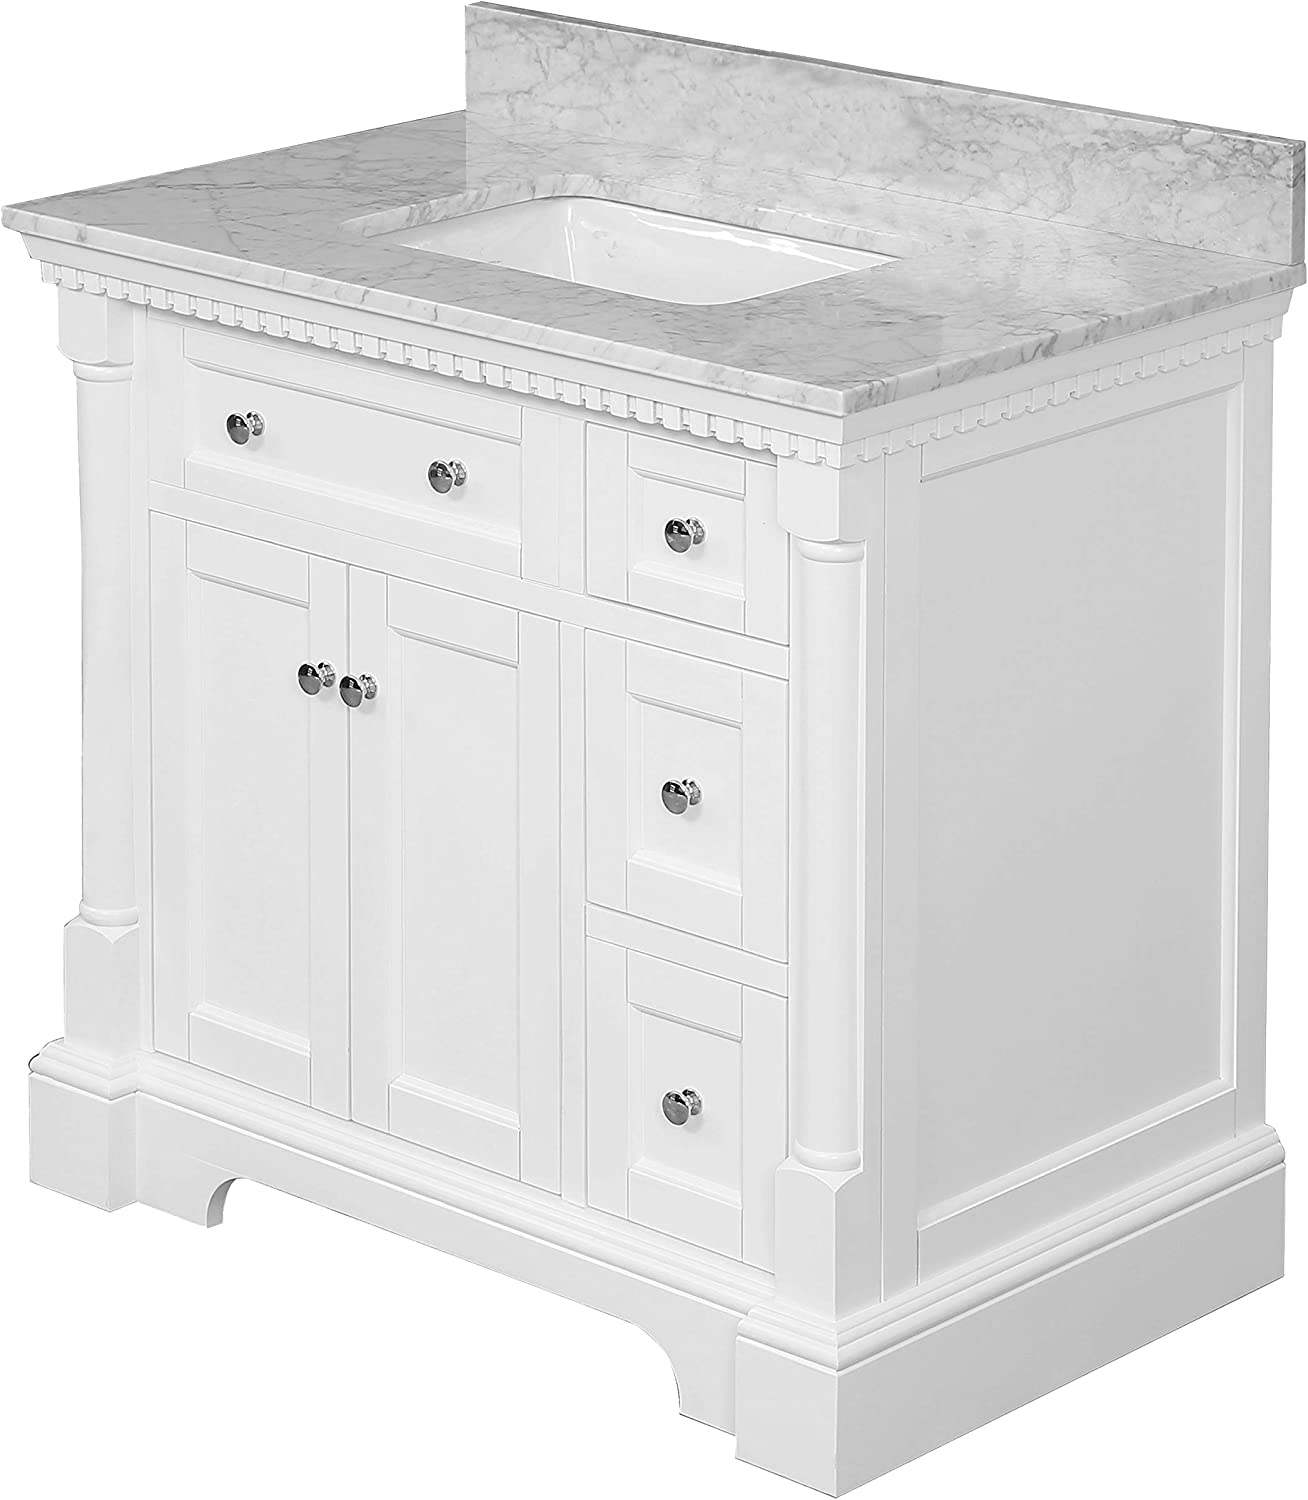 Buy Sydney 36 Inch Bathroom Vanity Carrara White Includes White Cabinet With Authentic Italian Carrara Marble Countertop And White Ceramic Sink Online In Vietnam B07z44c7f6